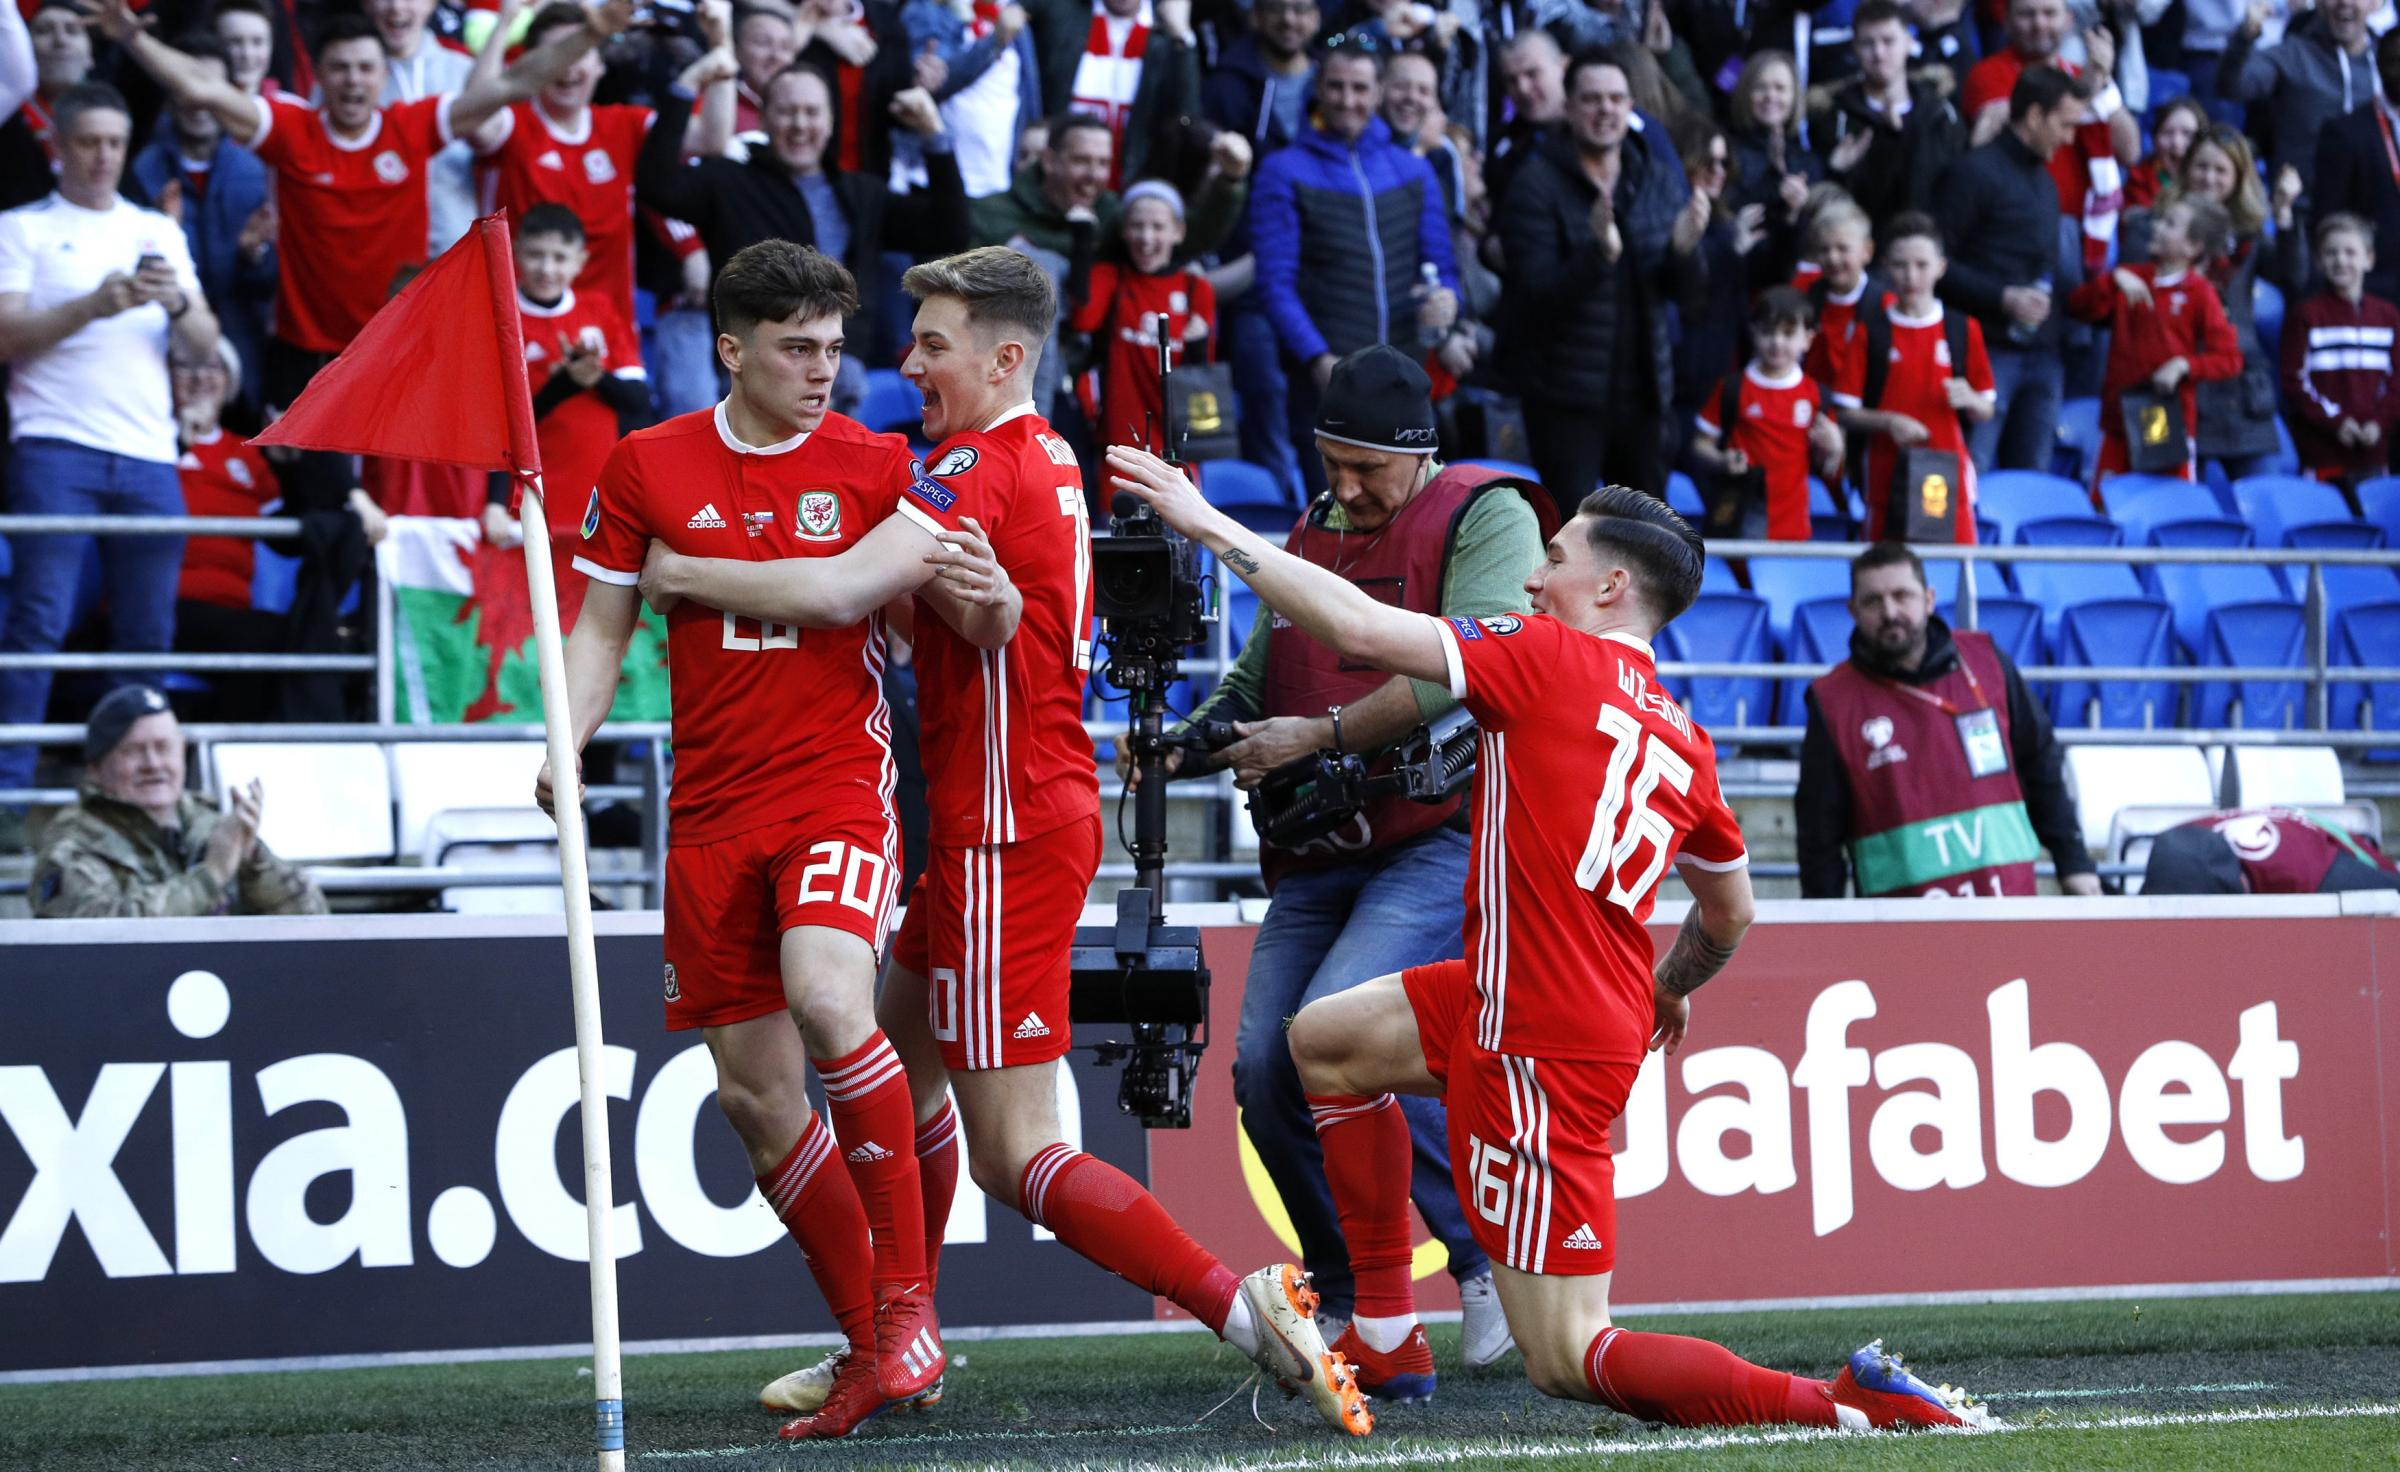 VICTORY: Goal scorer Daniel James, left, celebrates with Wales teammates David Brooks, centre, and Harry Wilson on Sunday